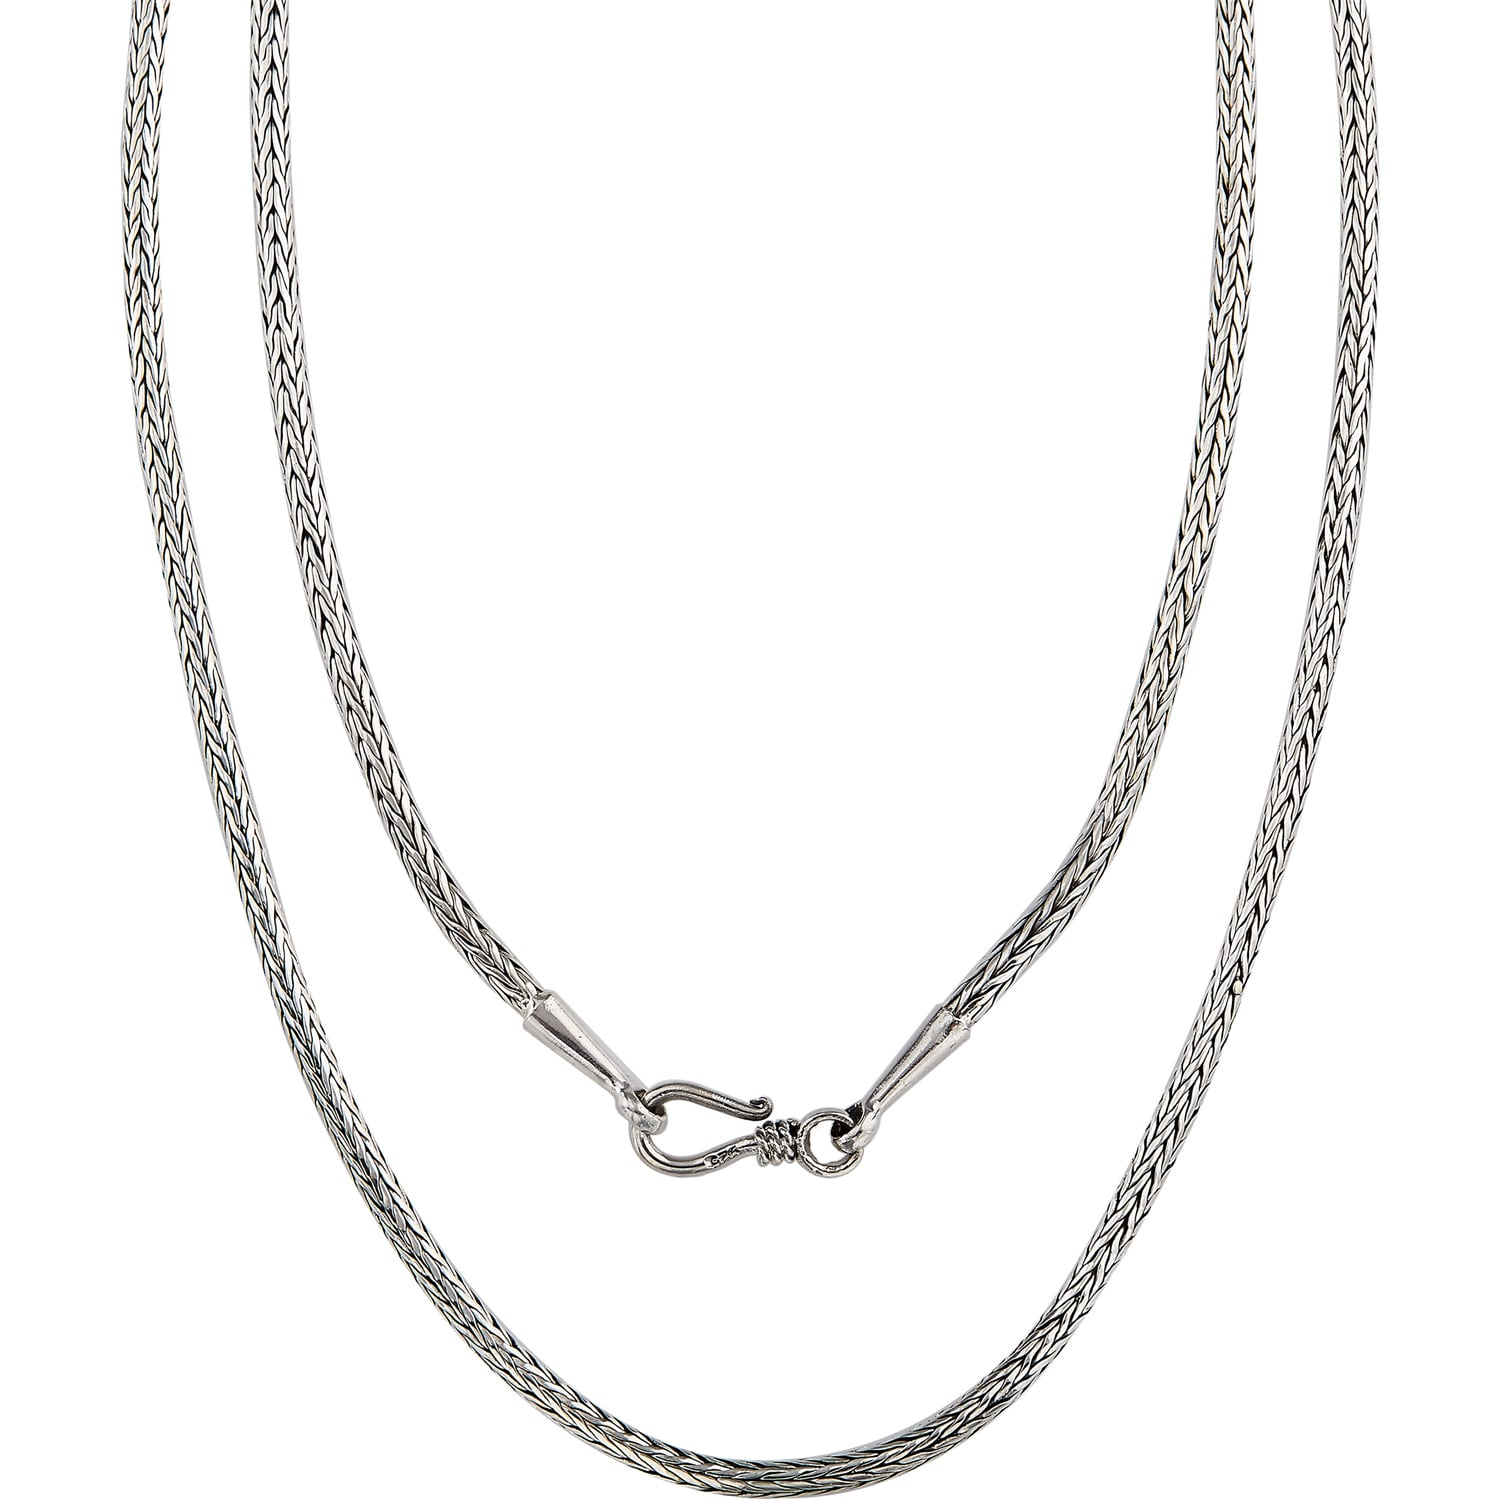 Handmade Wheat Style 925 Sterling Silver Chain Necklace